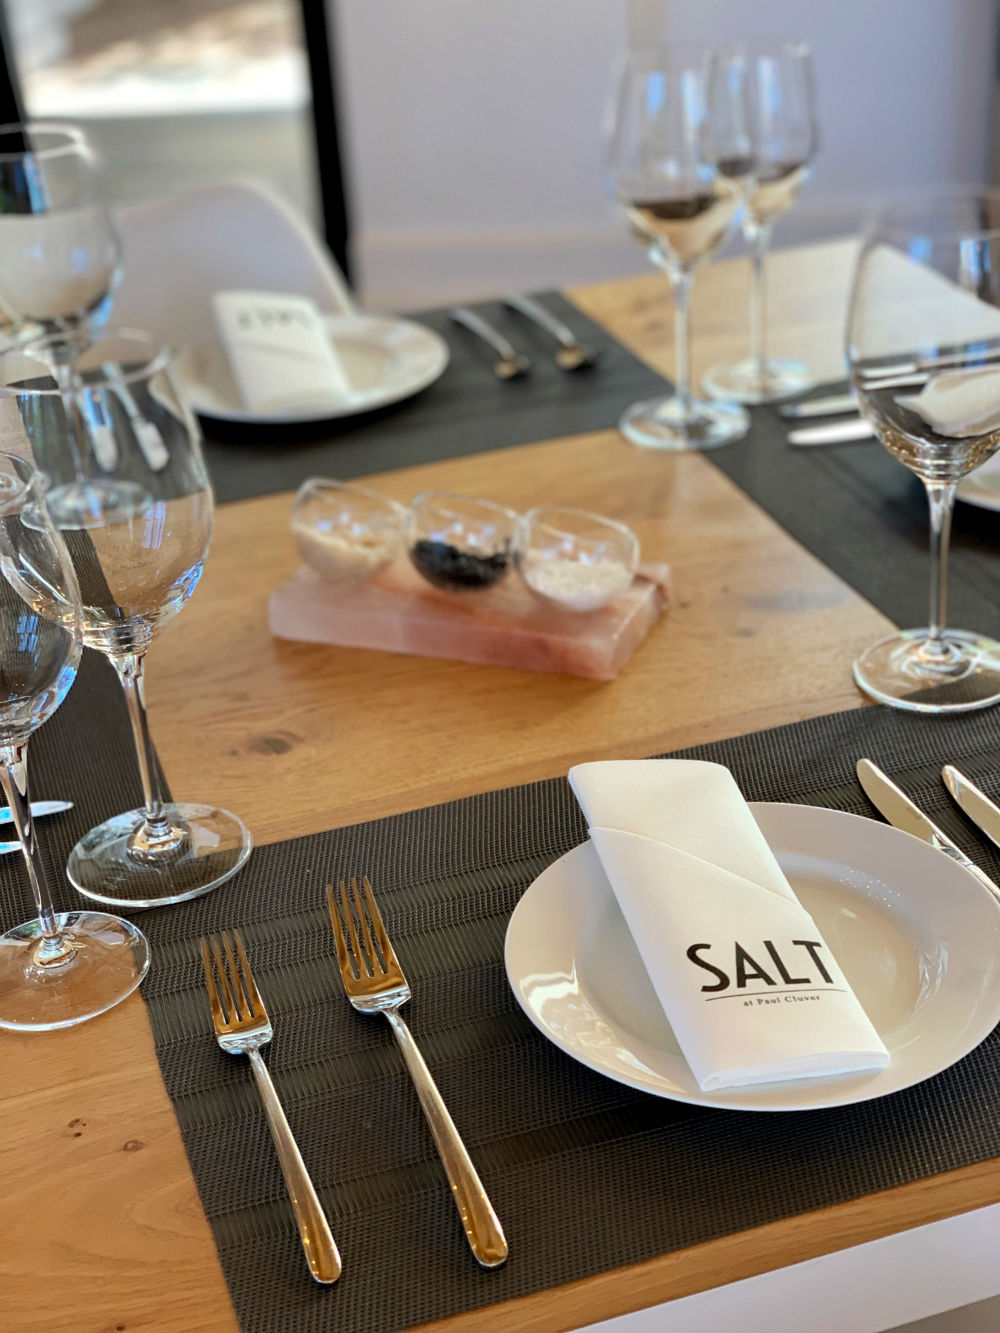 Salt Restaurant at Paul Cluver table setting